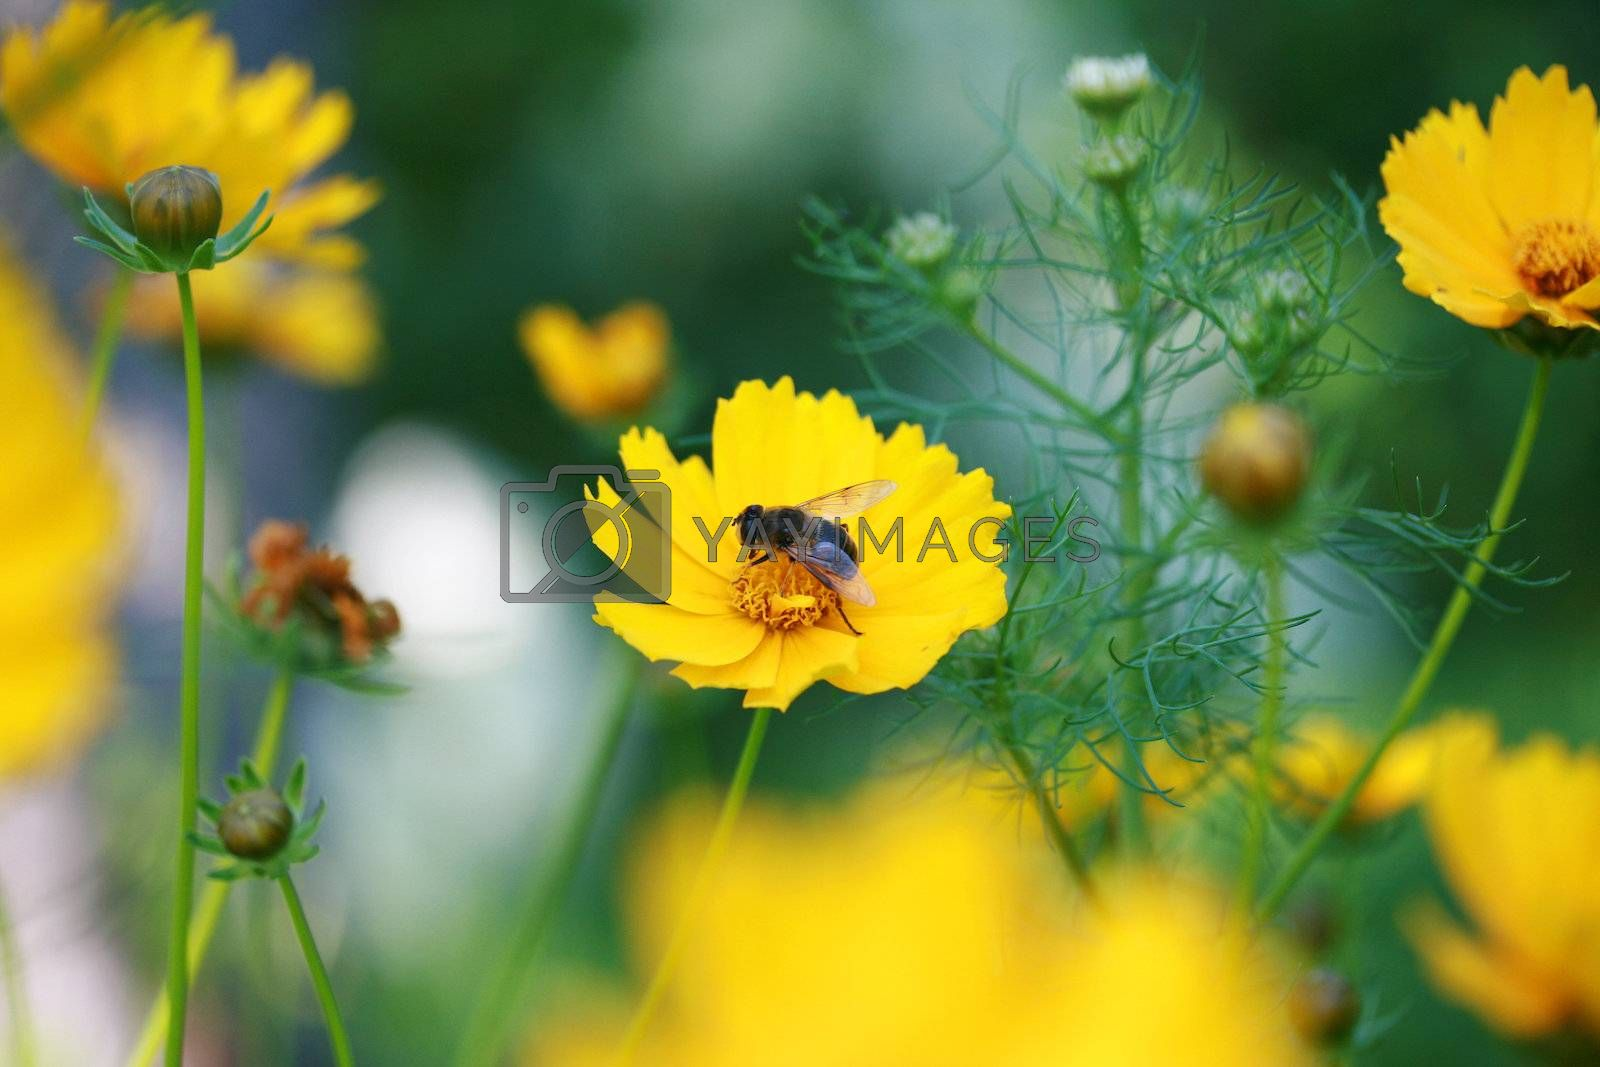 The bee sits in the center of a yellow flower